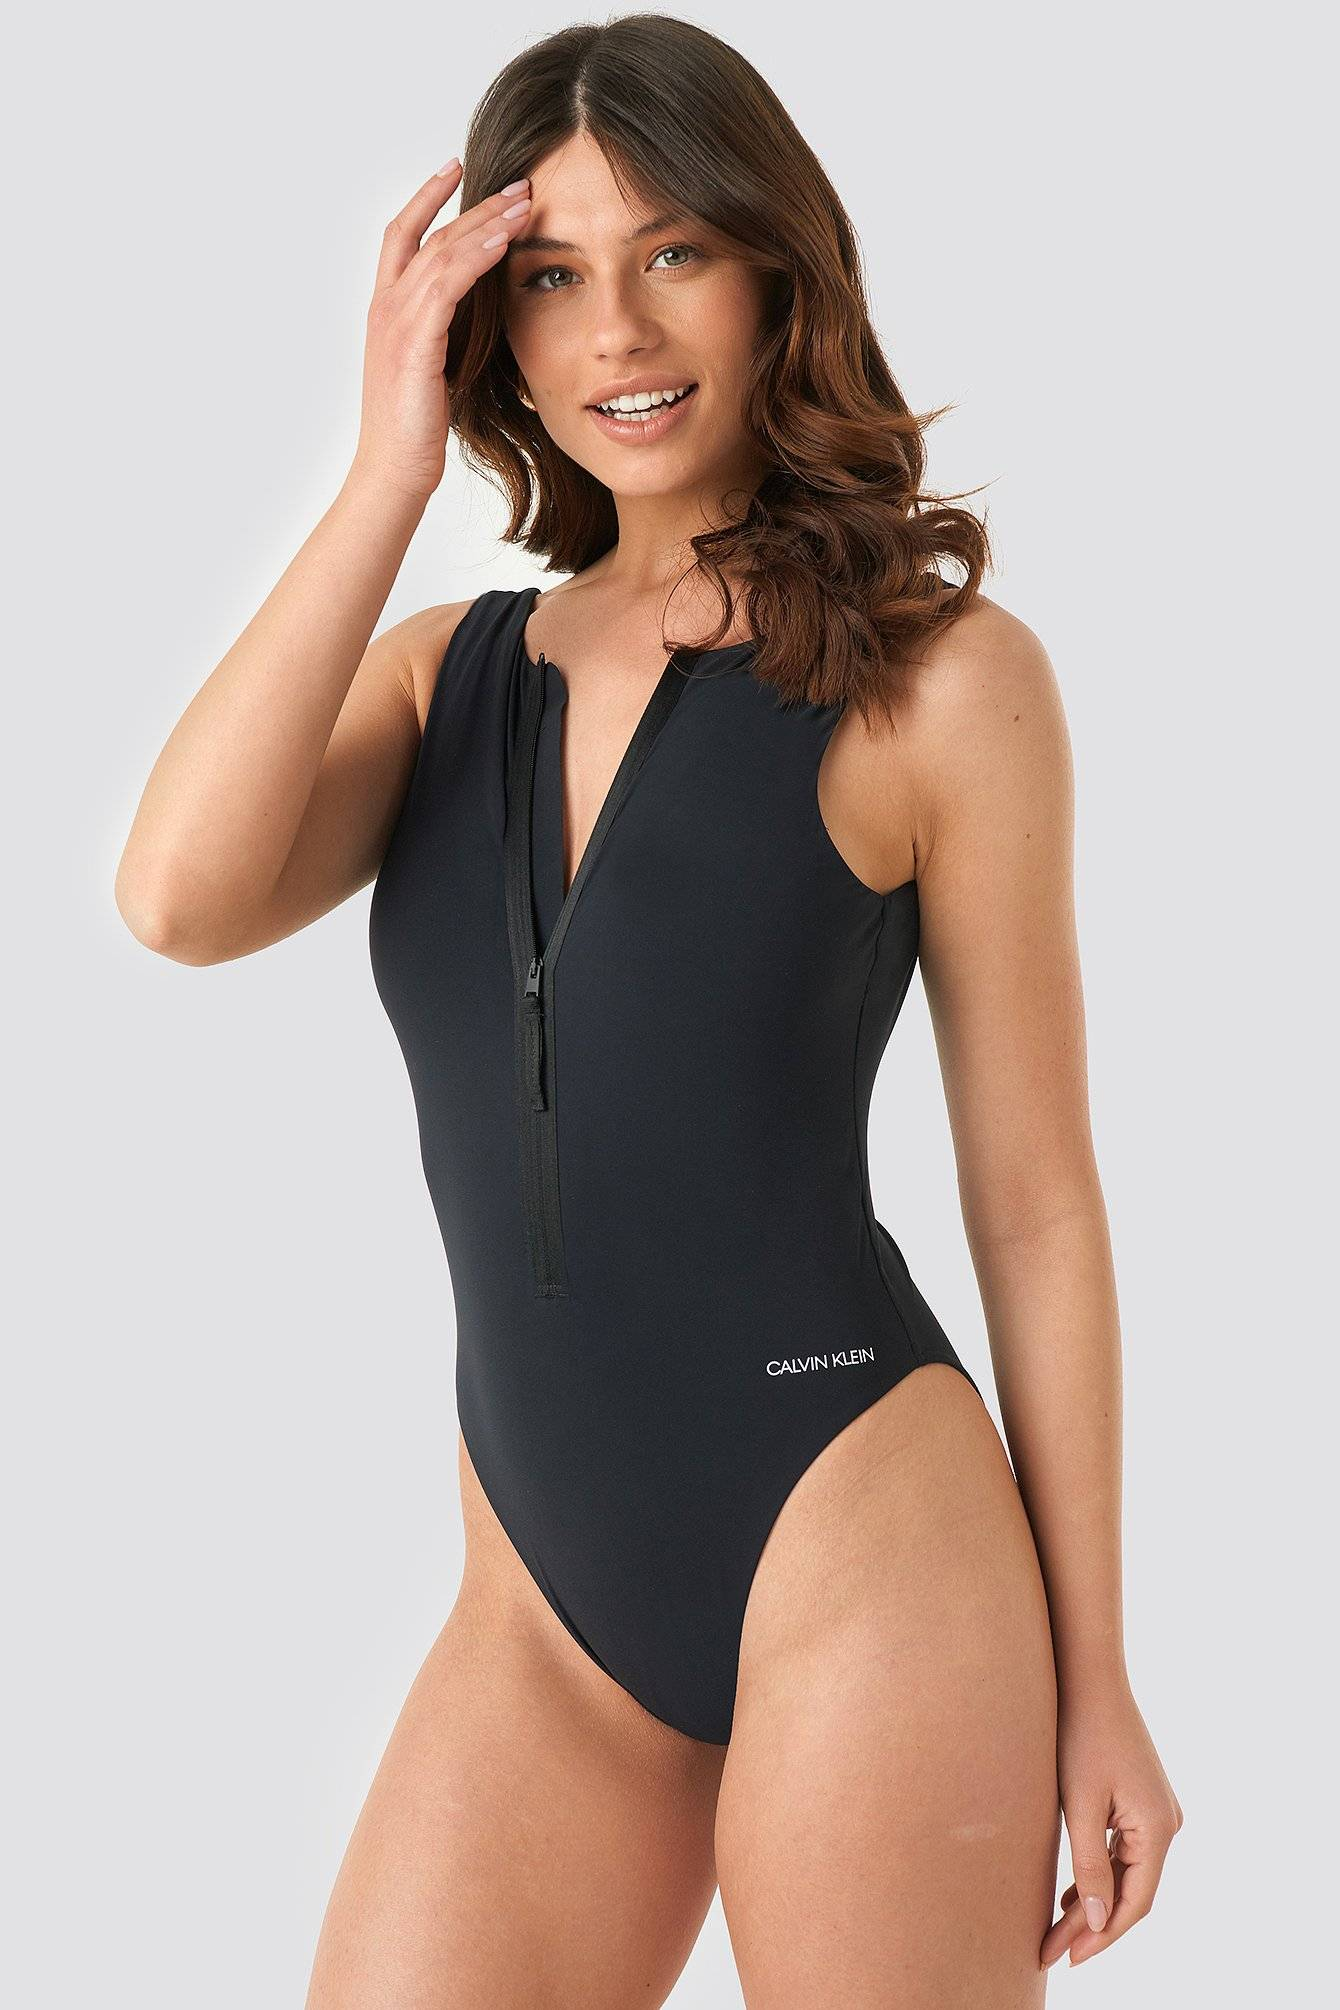 Calvin Klein Square Back One Piece Swimsuit - Black  - Size: Small